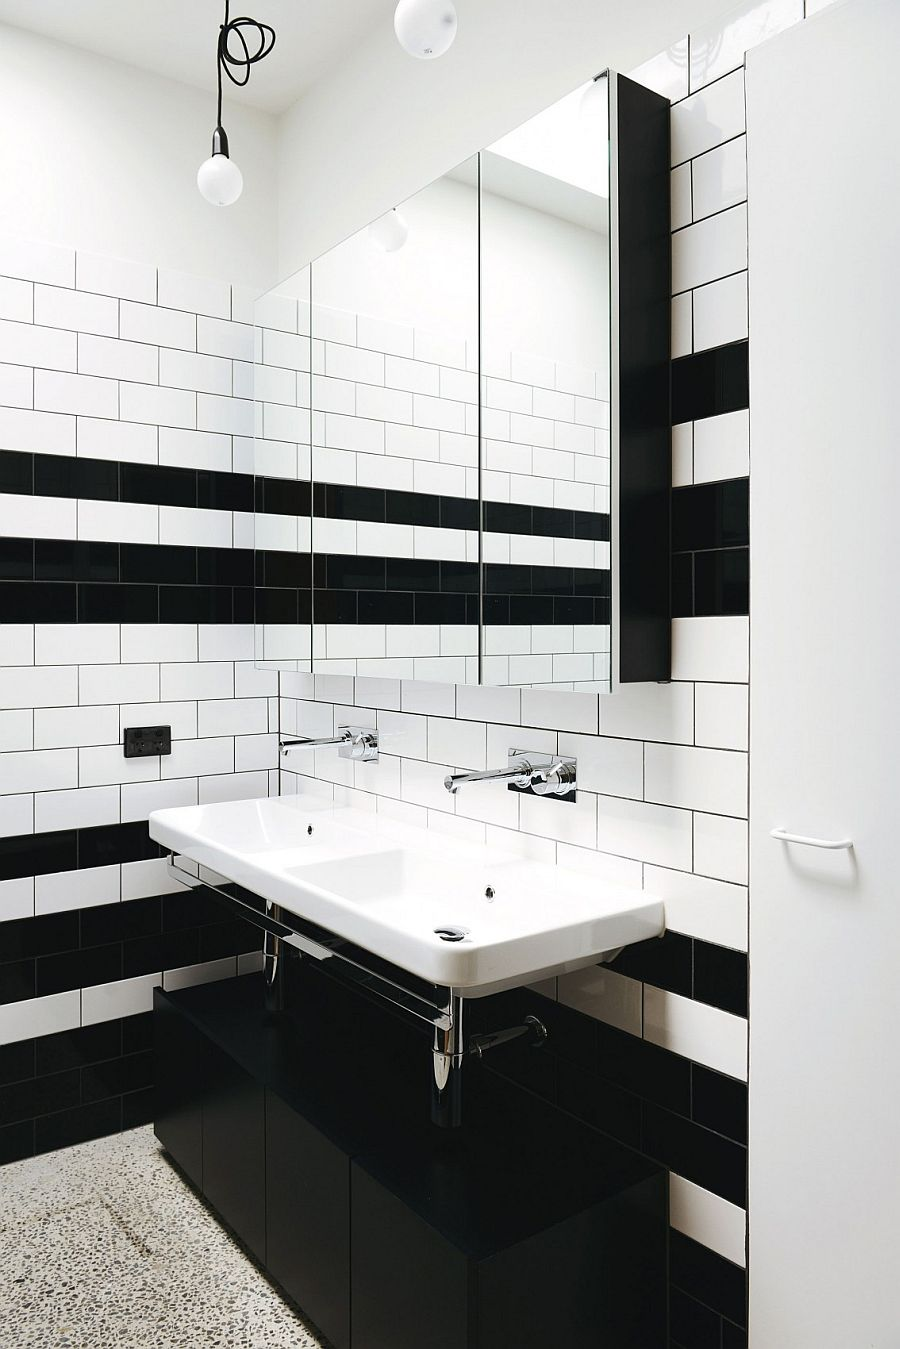 Tiny black and white bathroom with shower area